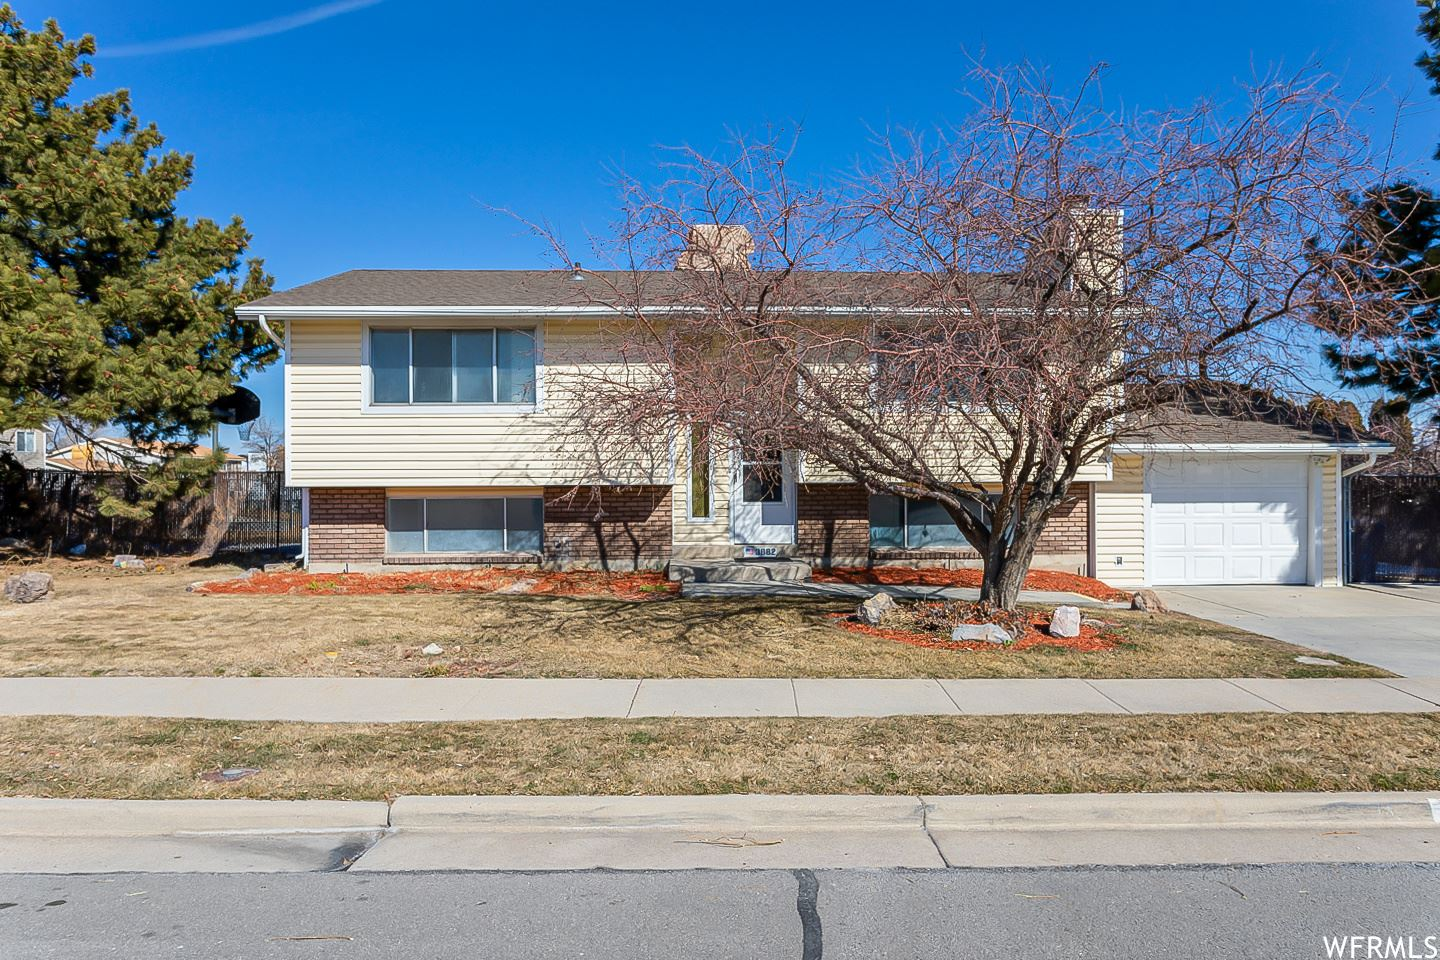 Photo of 3882 W RIVENDELL RD, Taylorsville, UT 84129 (MLS # 1728864)